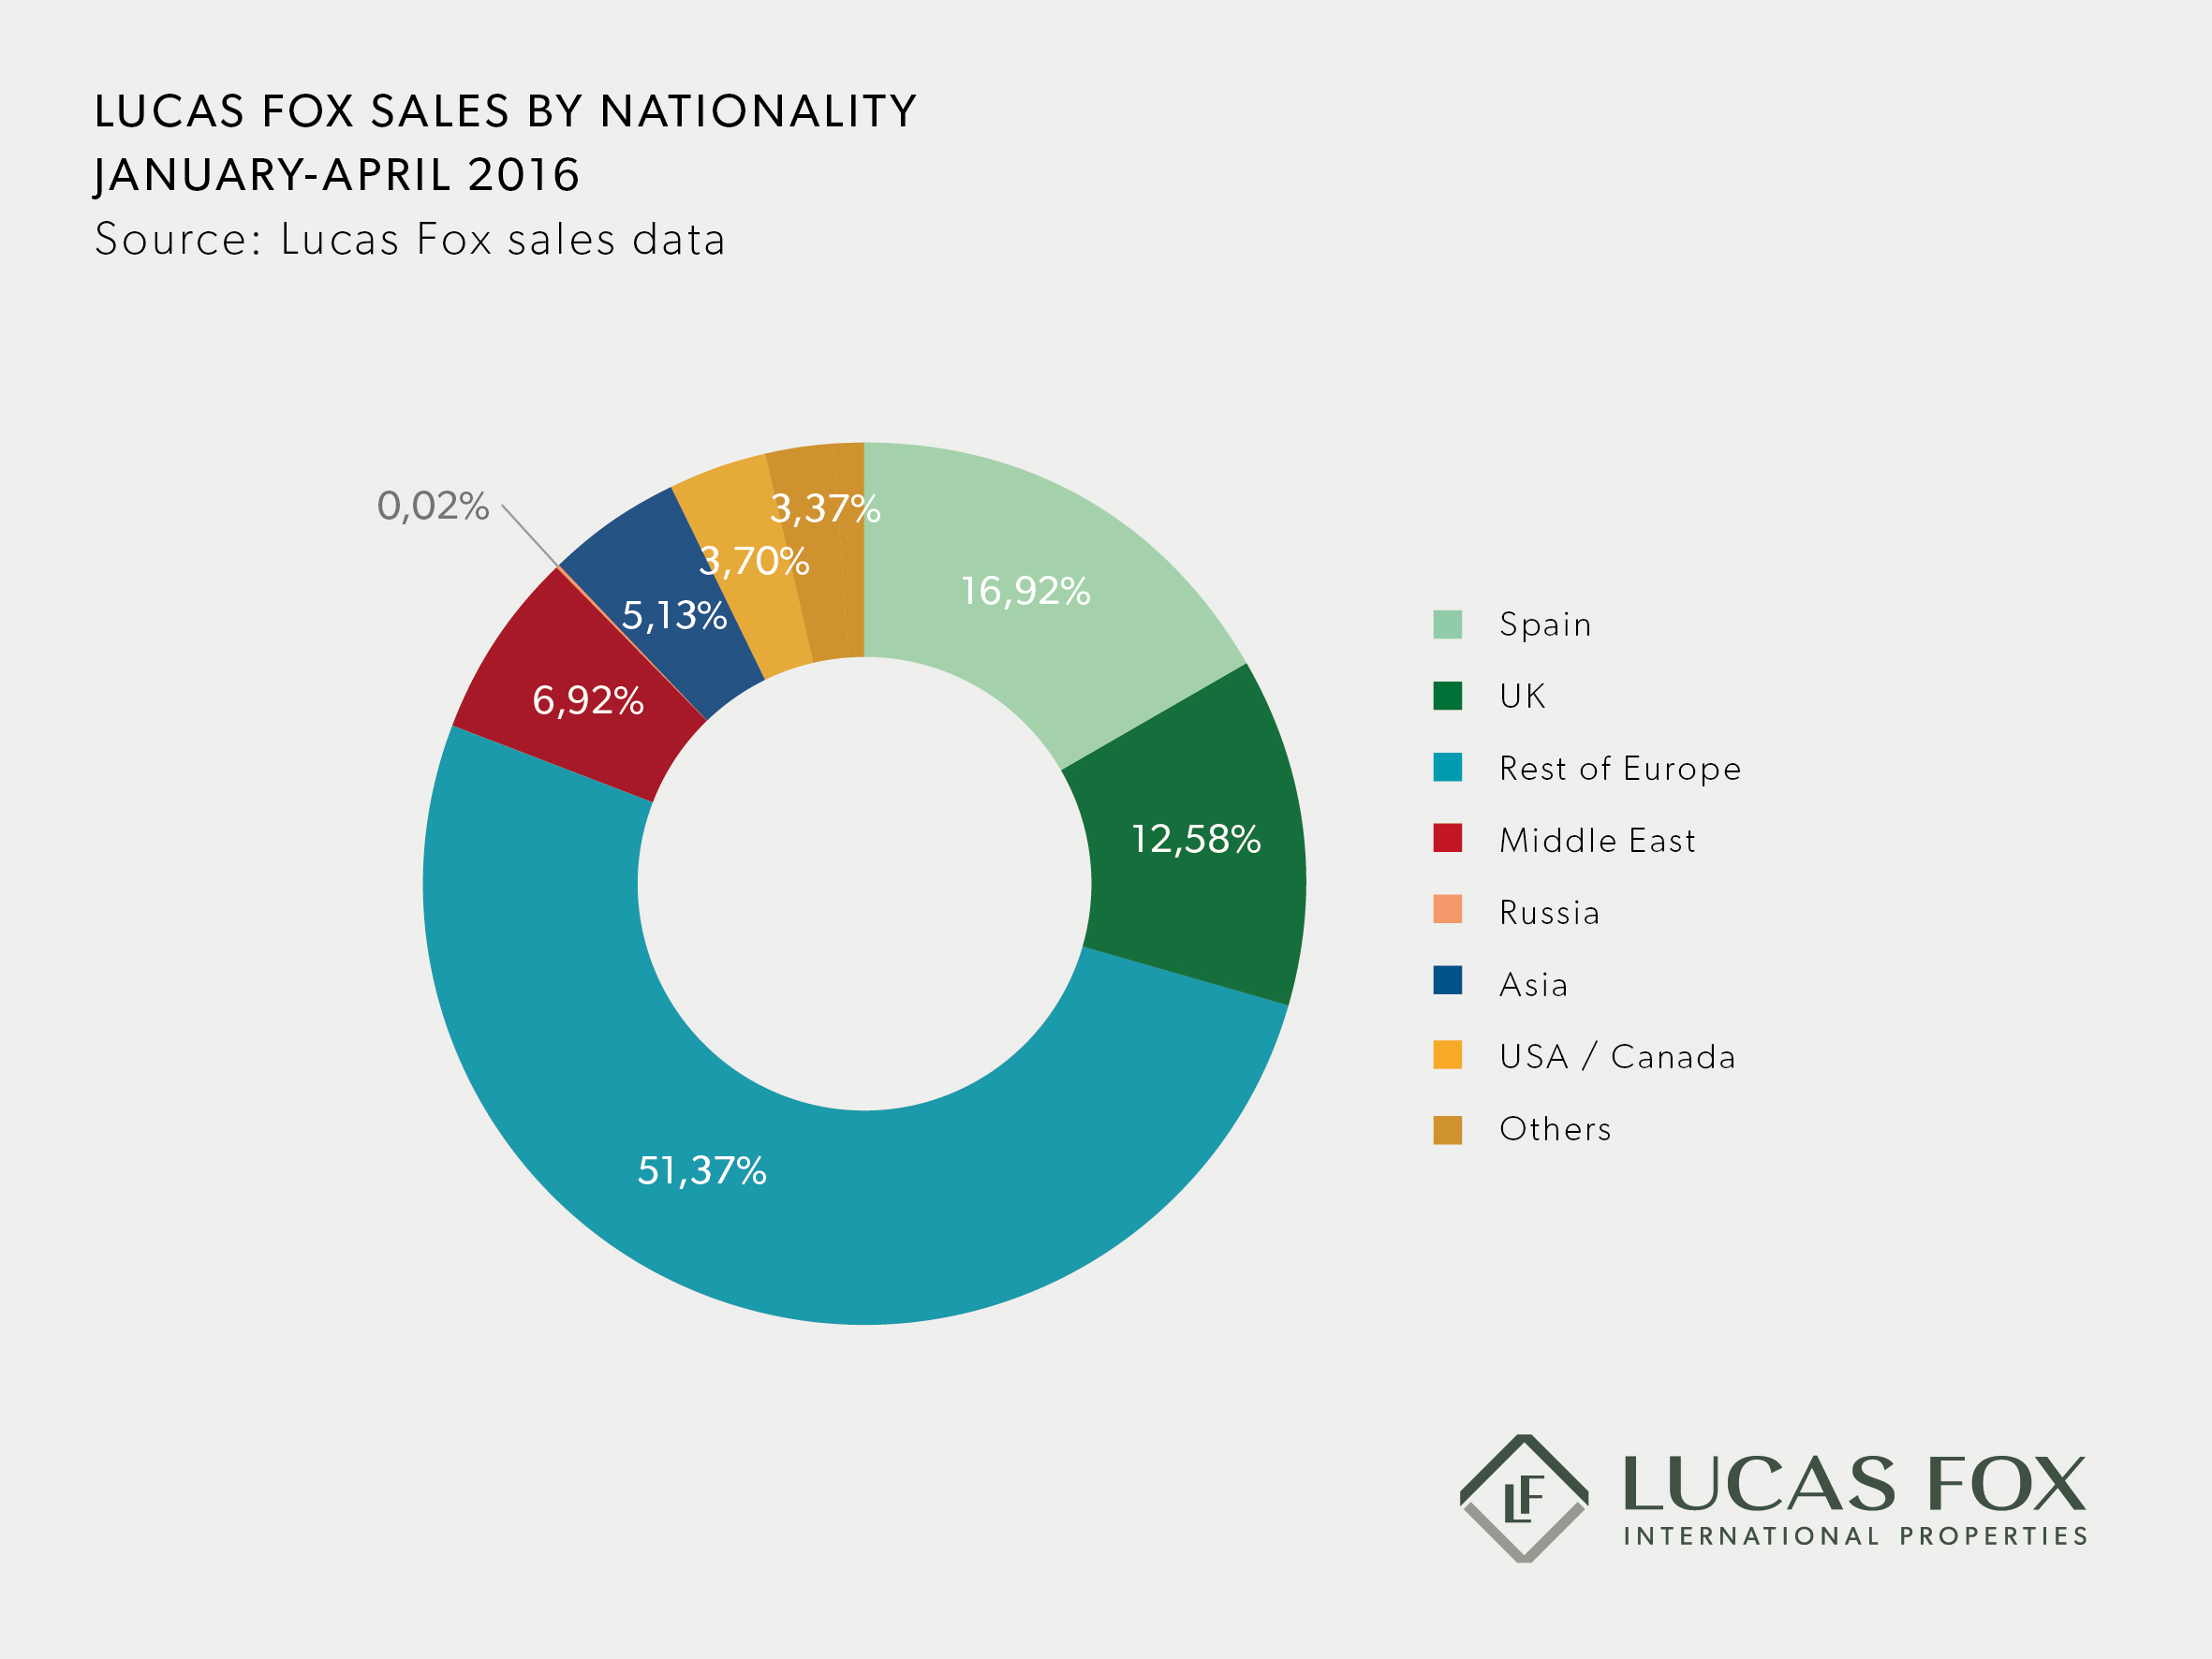 Lucas Fox nationality trends 2016